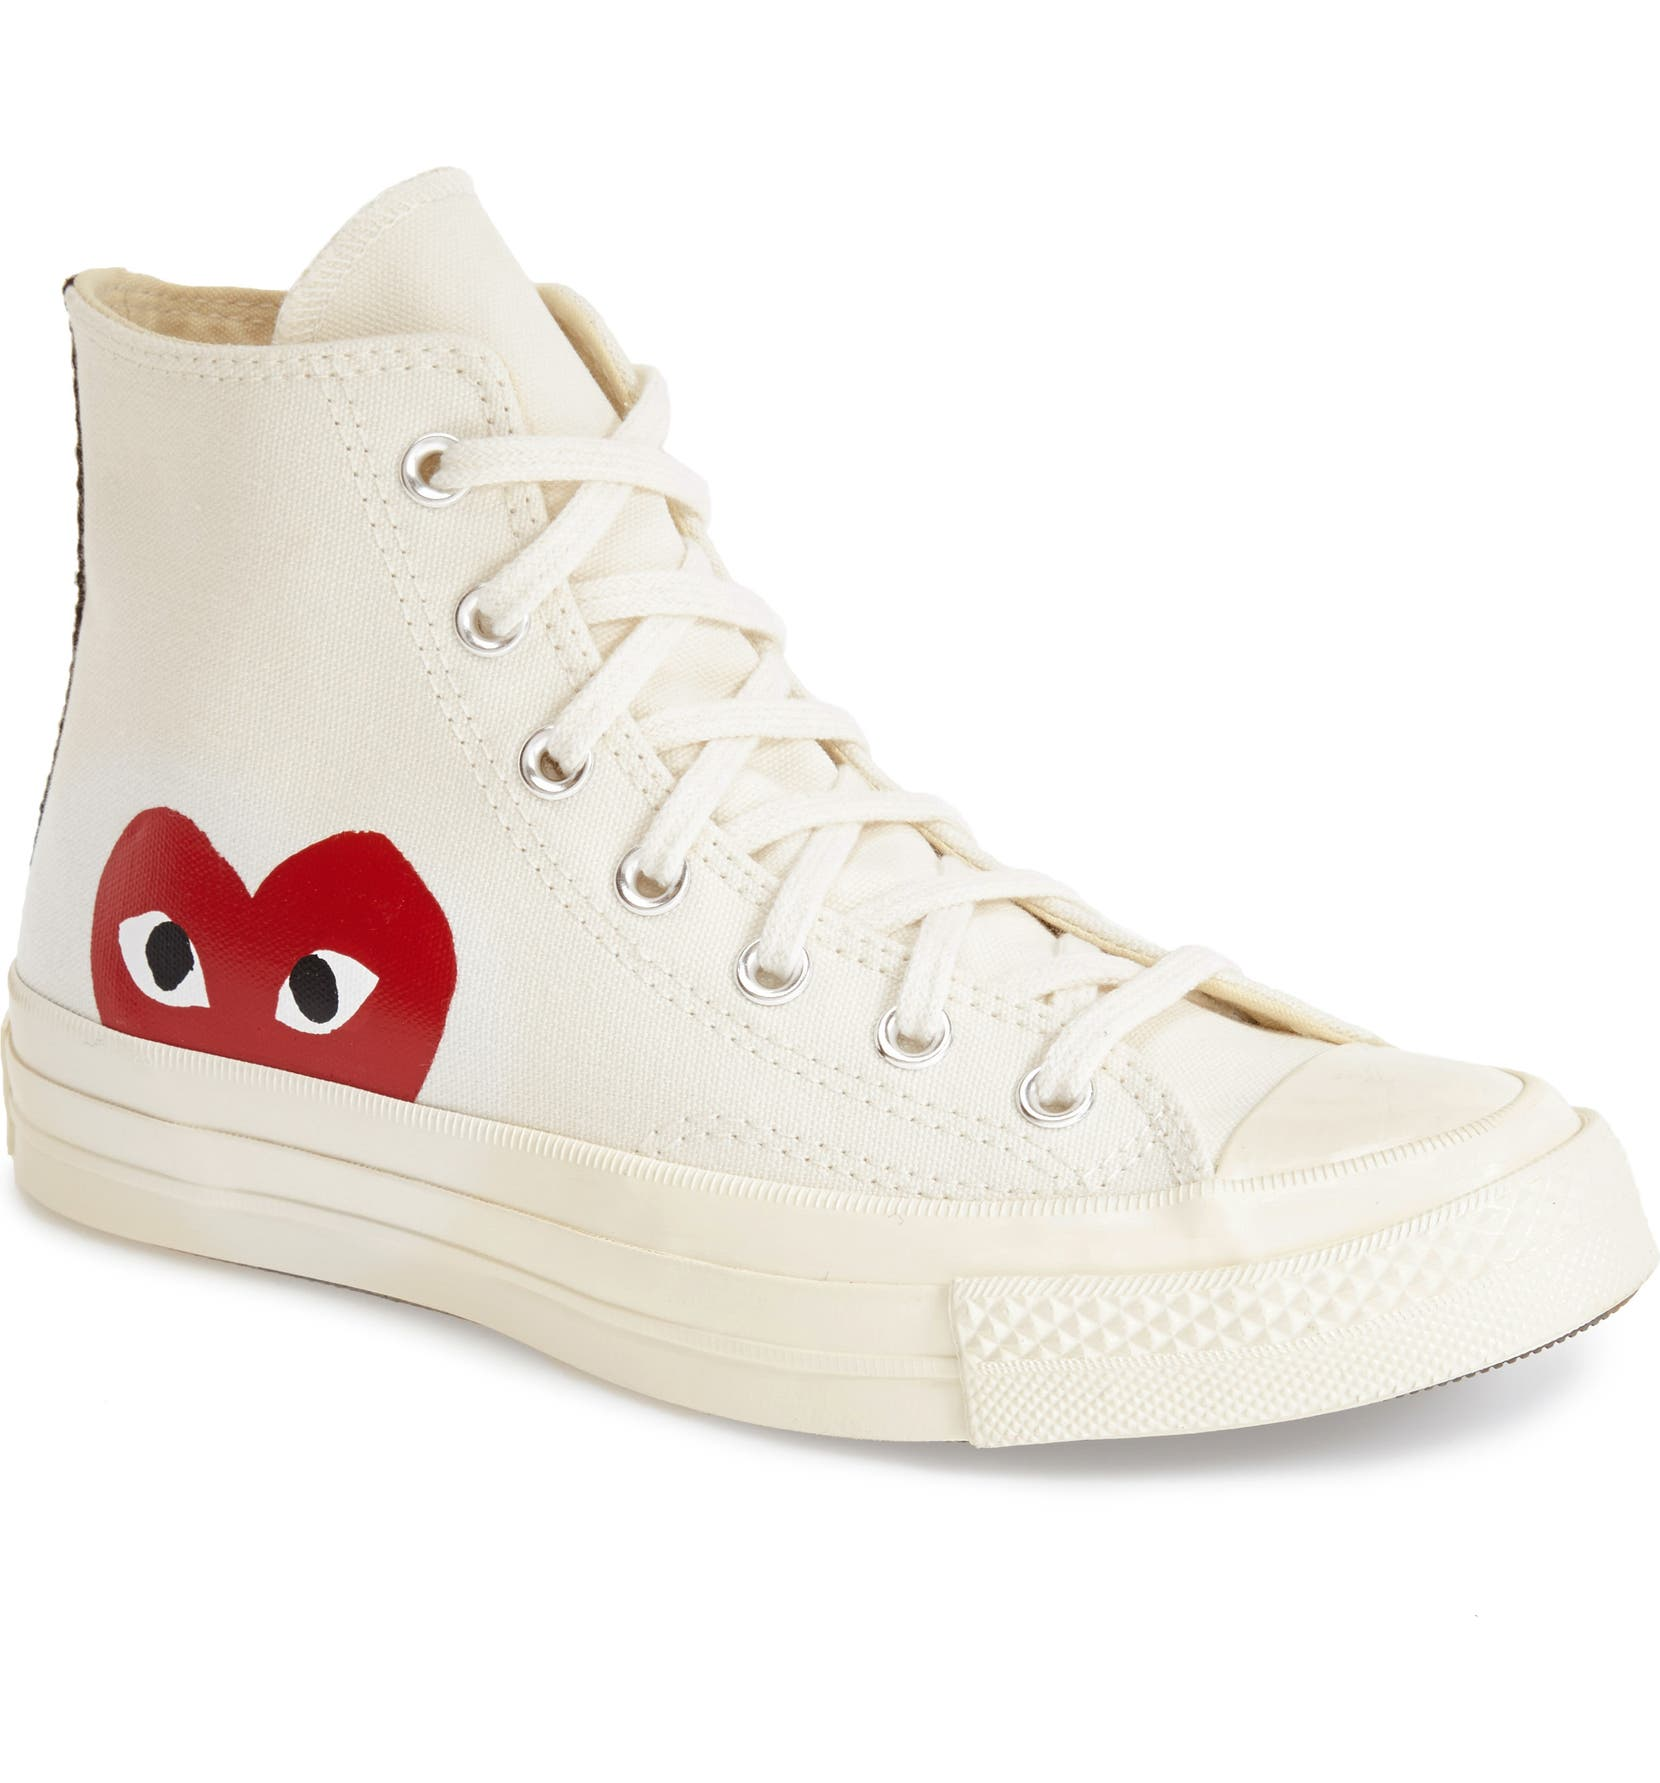 a7185c798e39 Comme des Garçons PLAY x Converse Chuck Taylor® Hidden Heart High Top  Sneaker (Men)